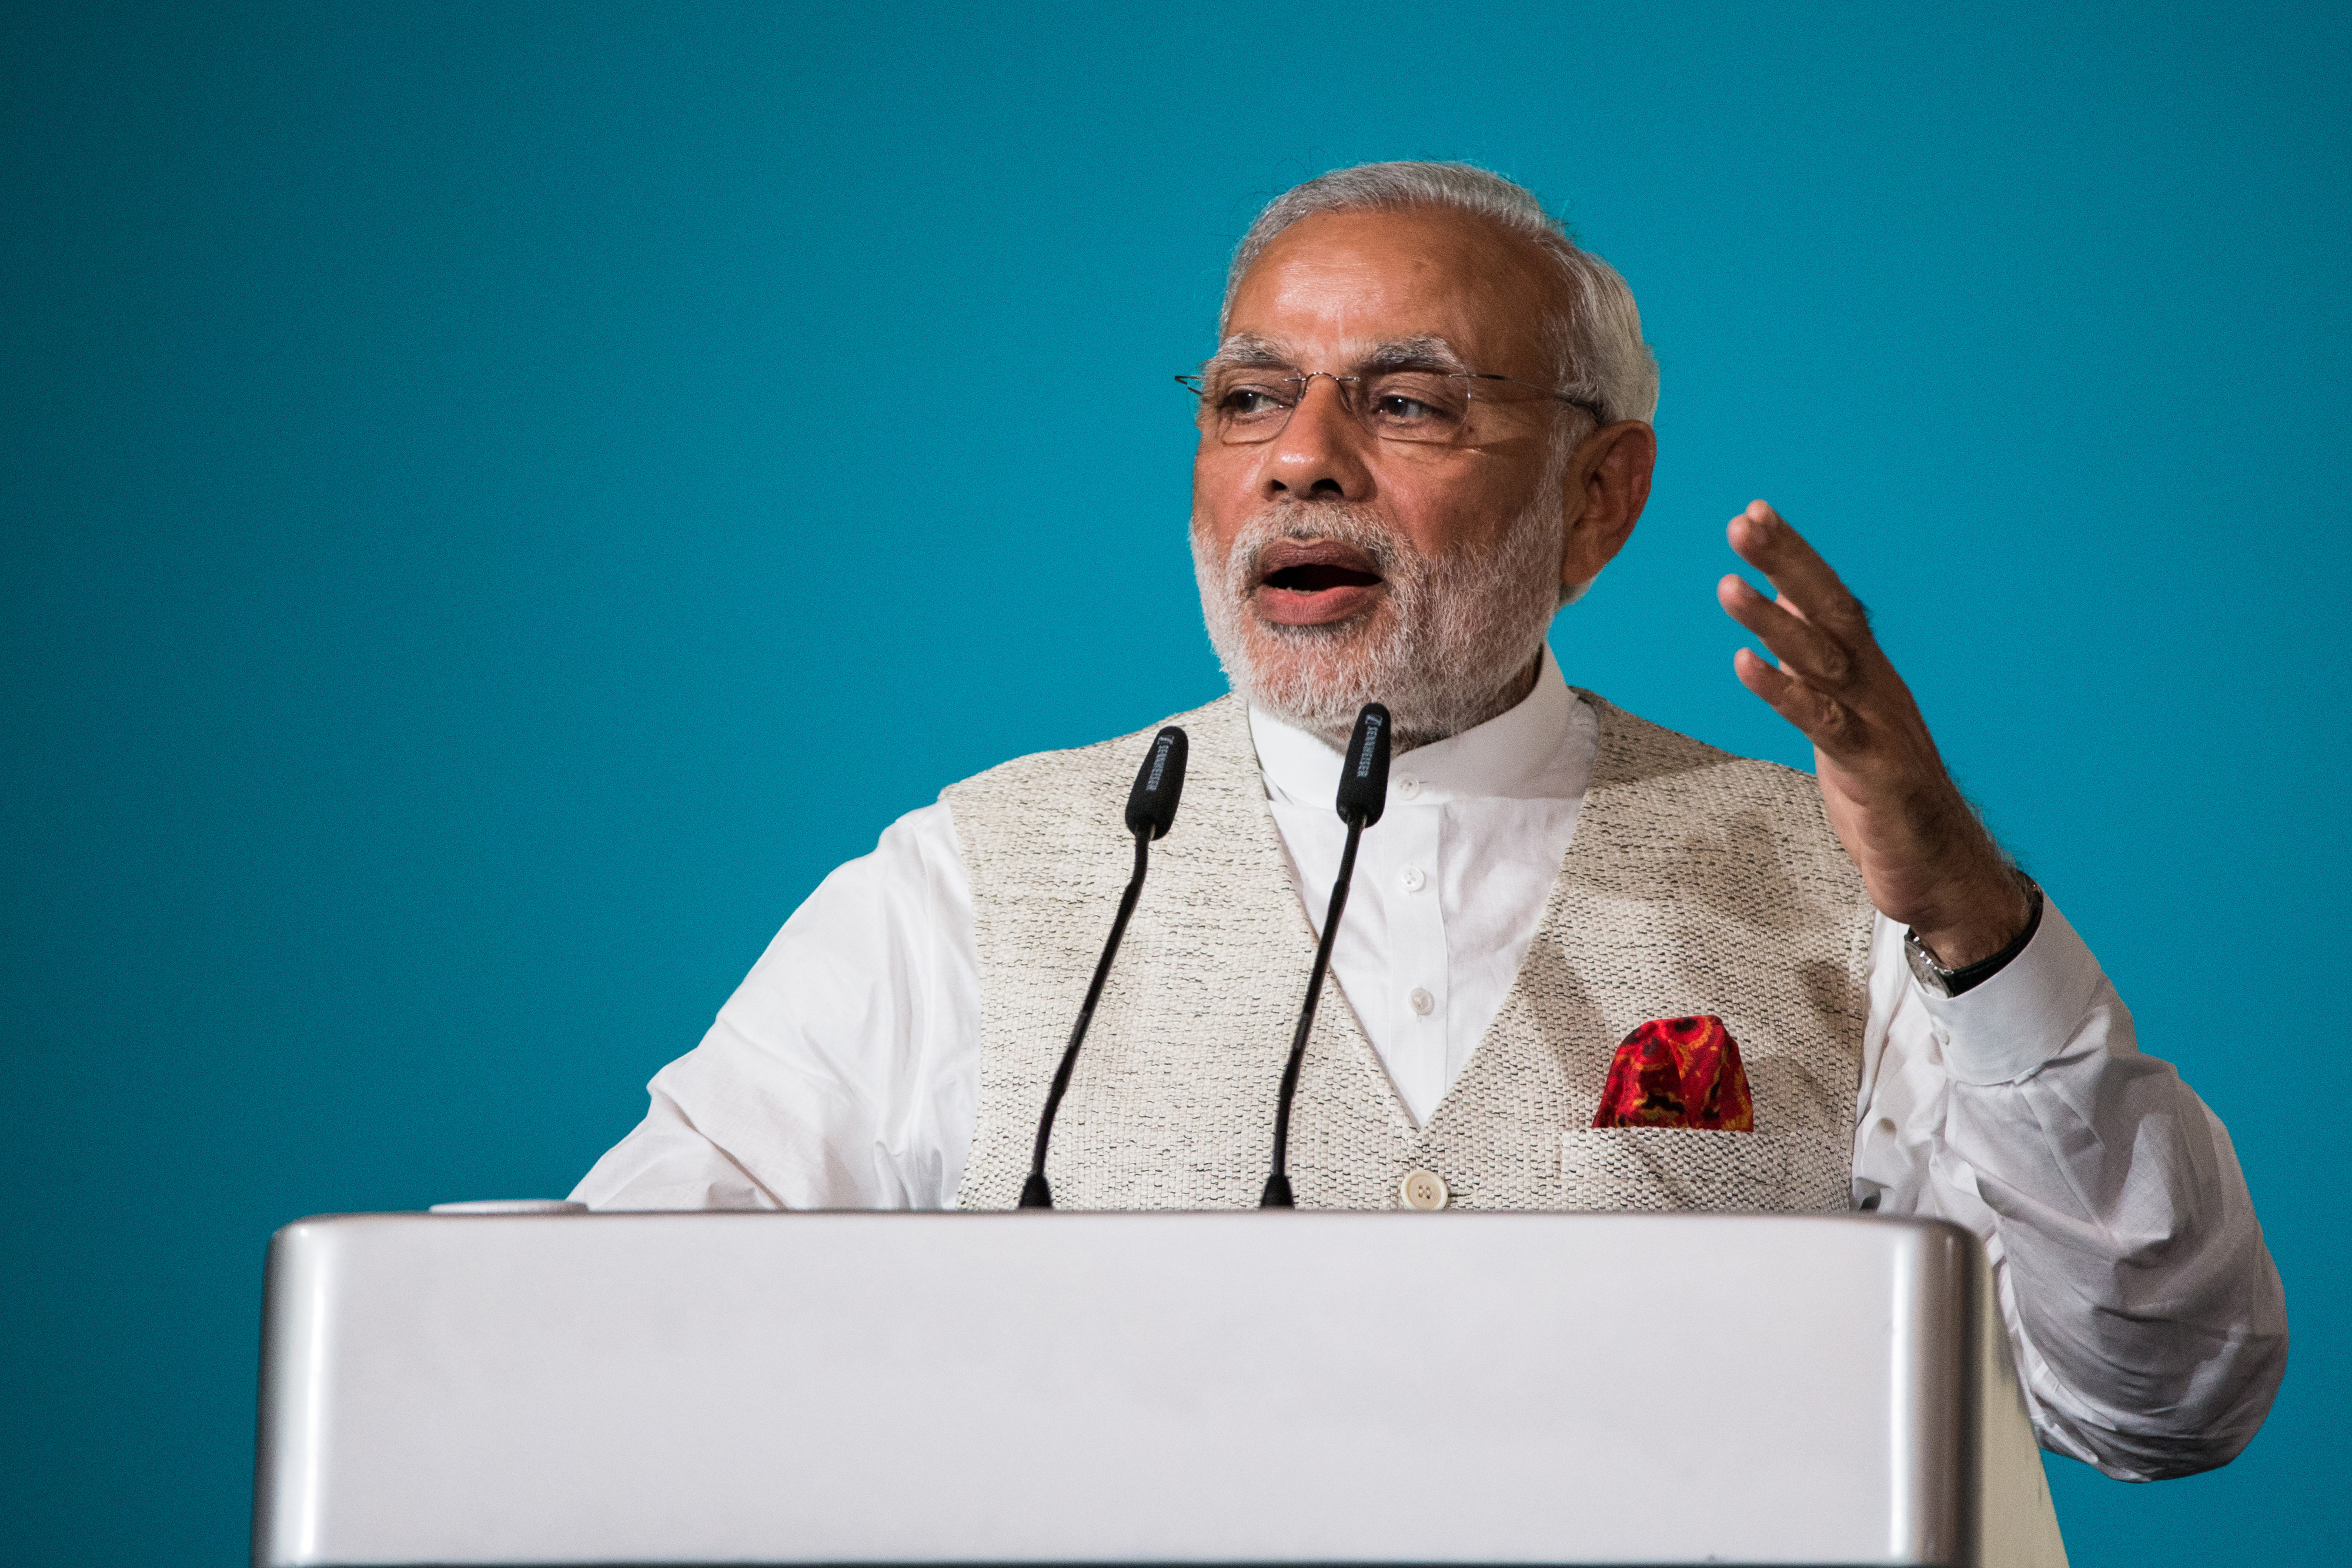 Narendra Modi, India's prime minister, gestures whilst speaking during the 37th Singapore Lecture held at the Shangri-La Hotel in Singapore, on Monday, Nov. 23, 2015.